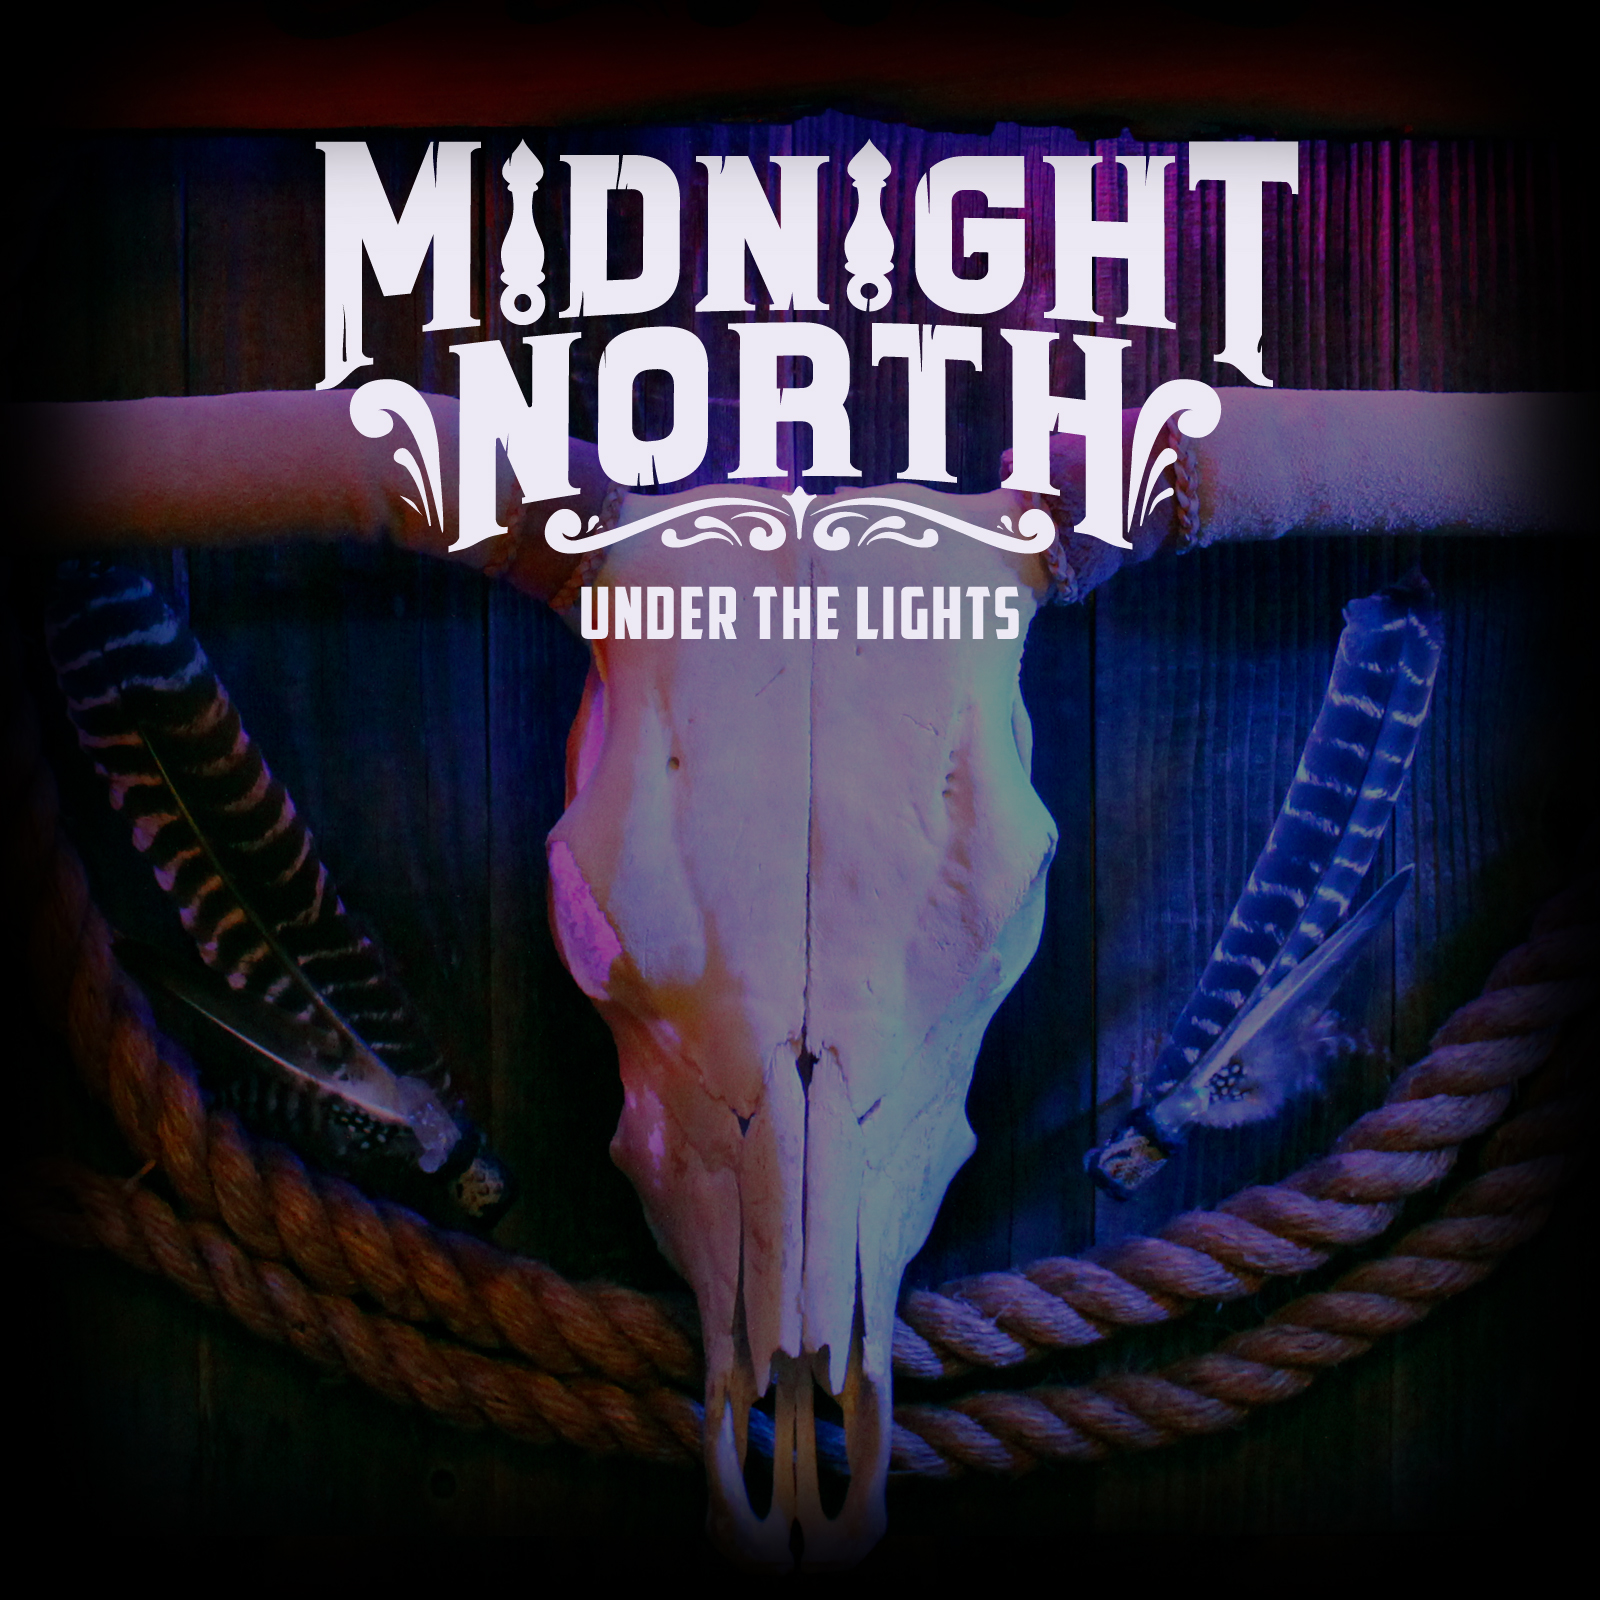 Midnight North - New Album Under the Lights out now